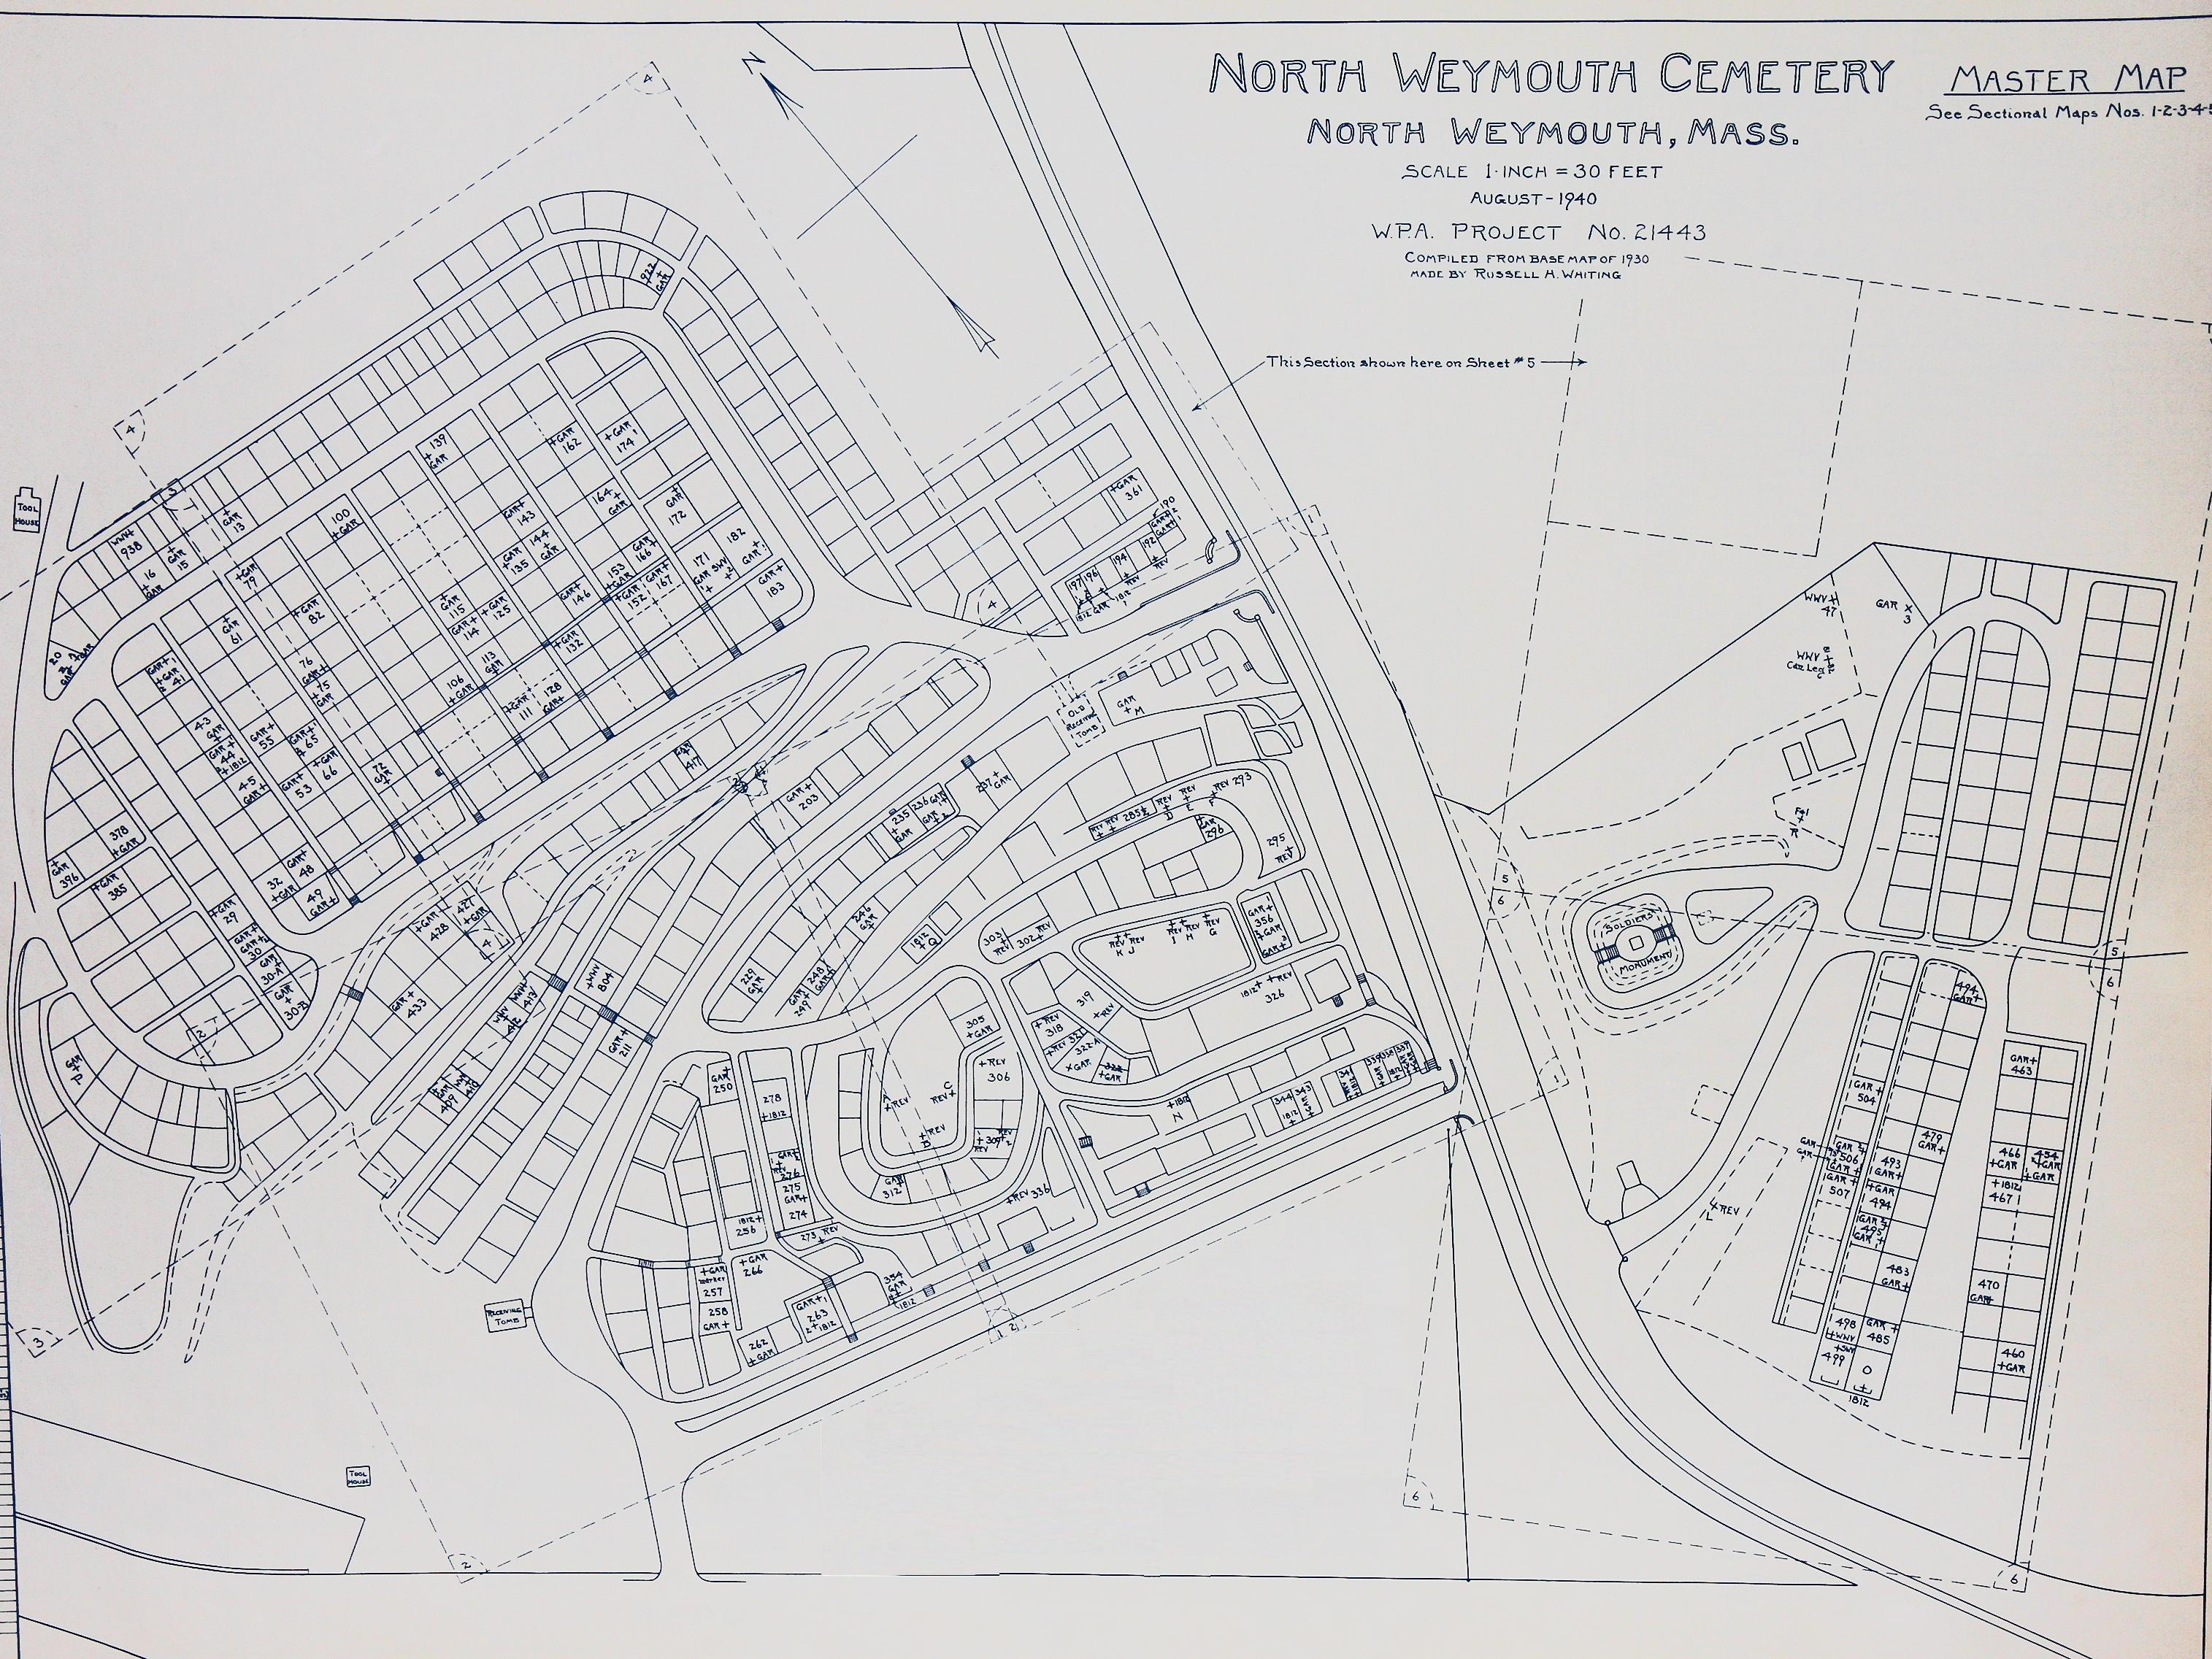 Old North Cemetery master map